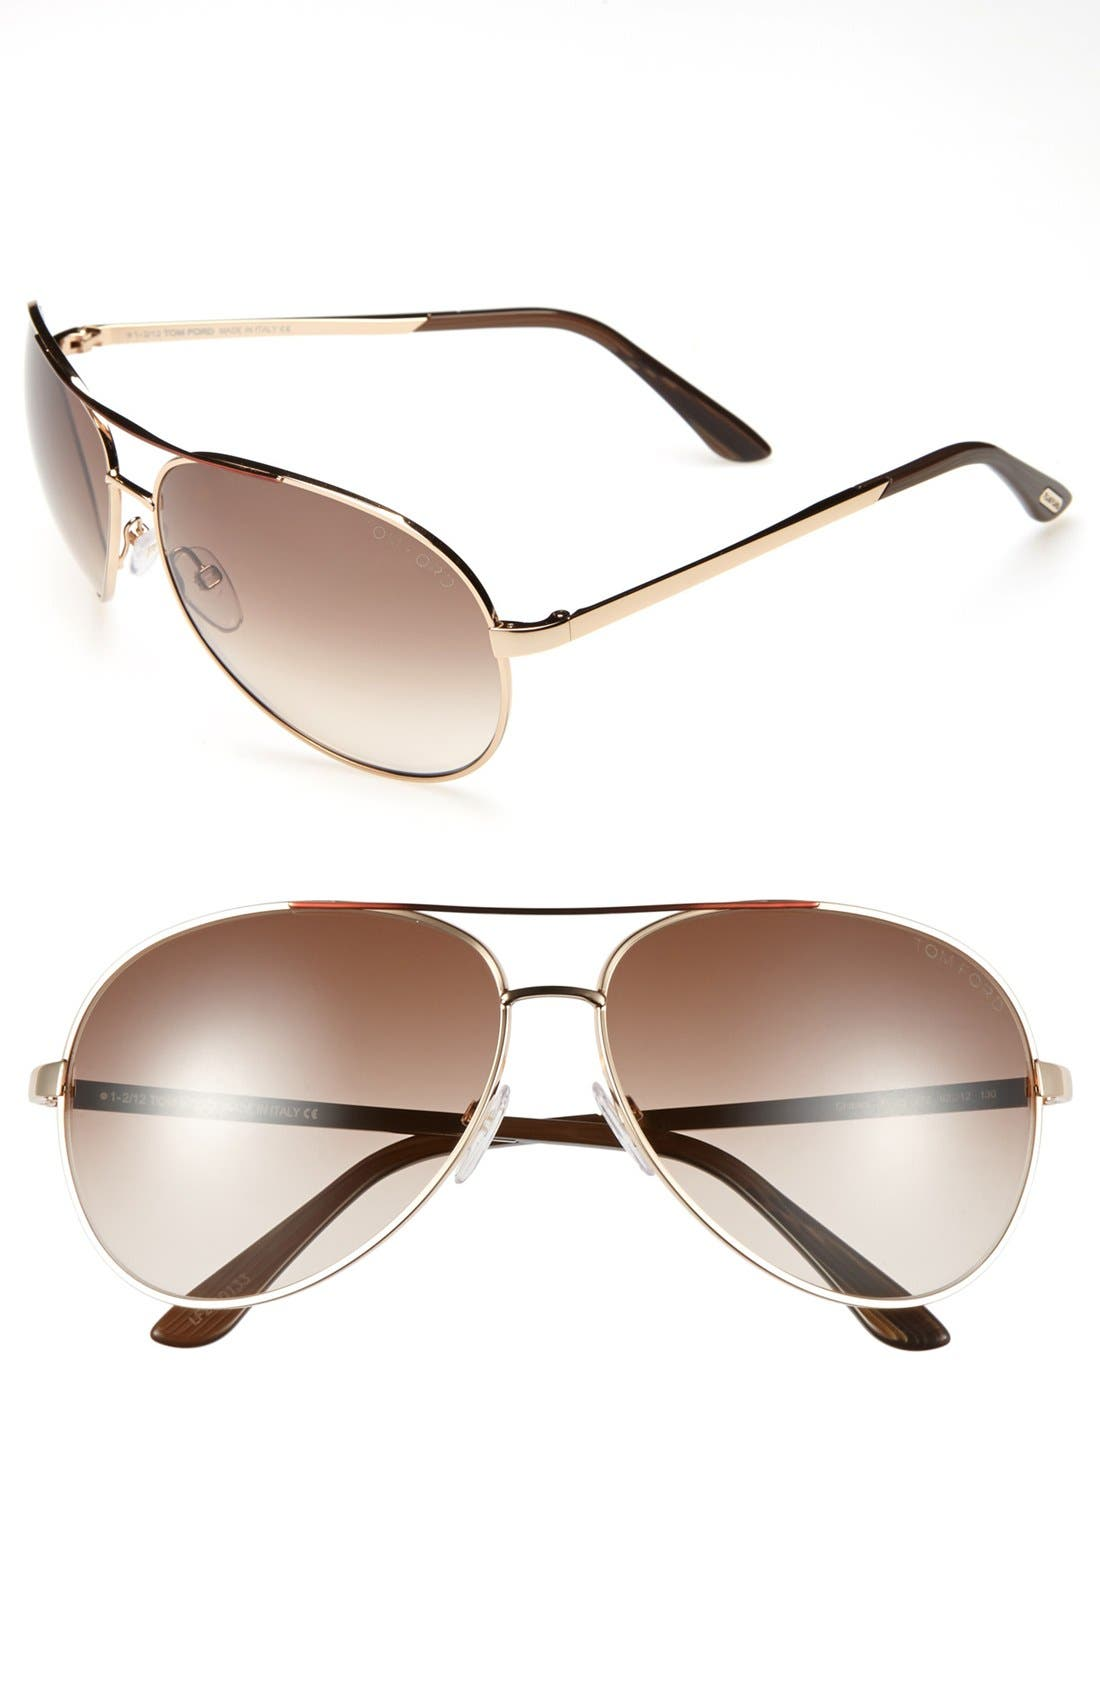 Alternate Image 1 Selected - Tom Ford 'Charles' 62mm Aviator Sunglasses